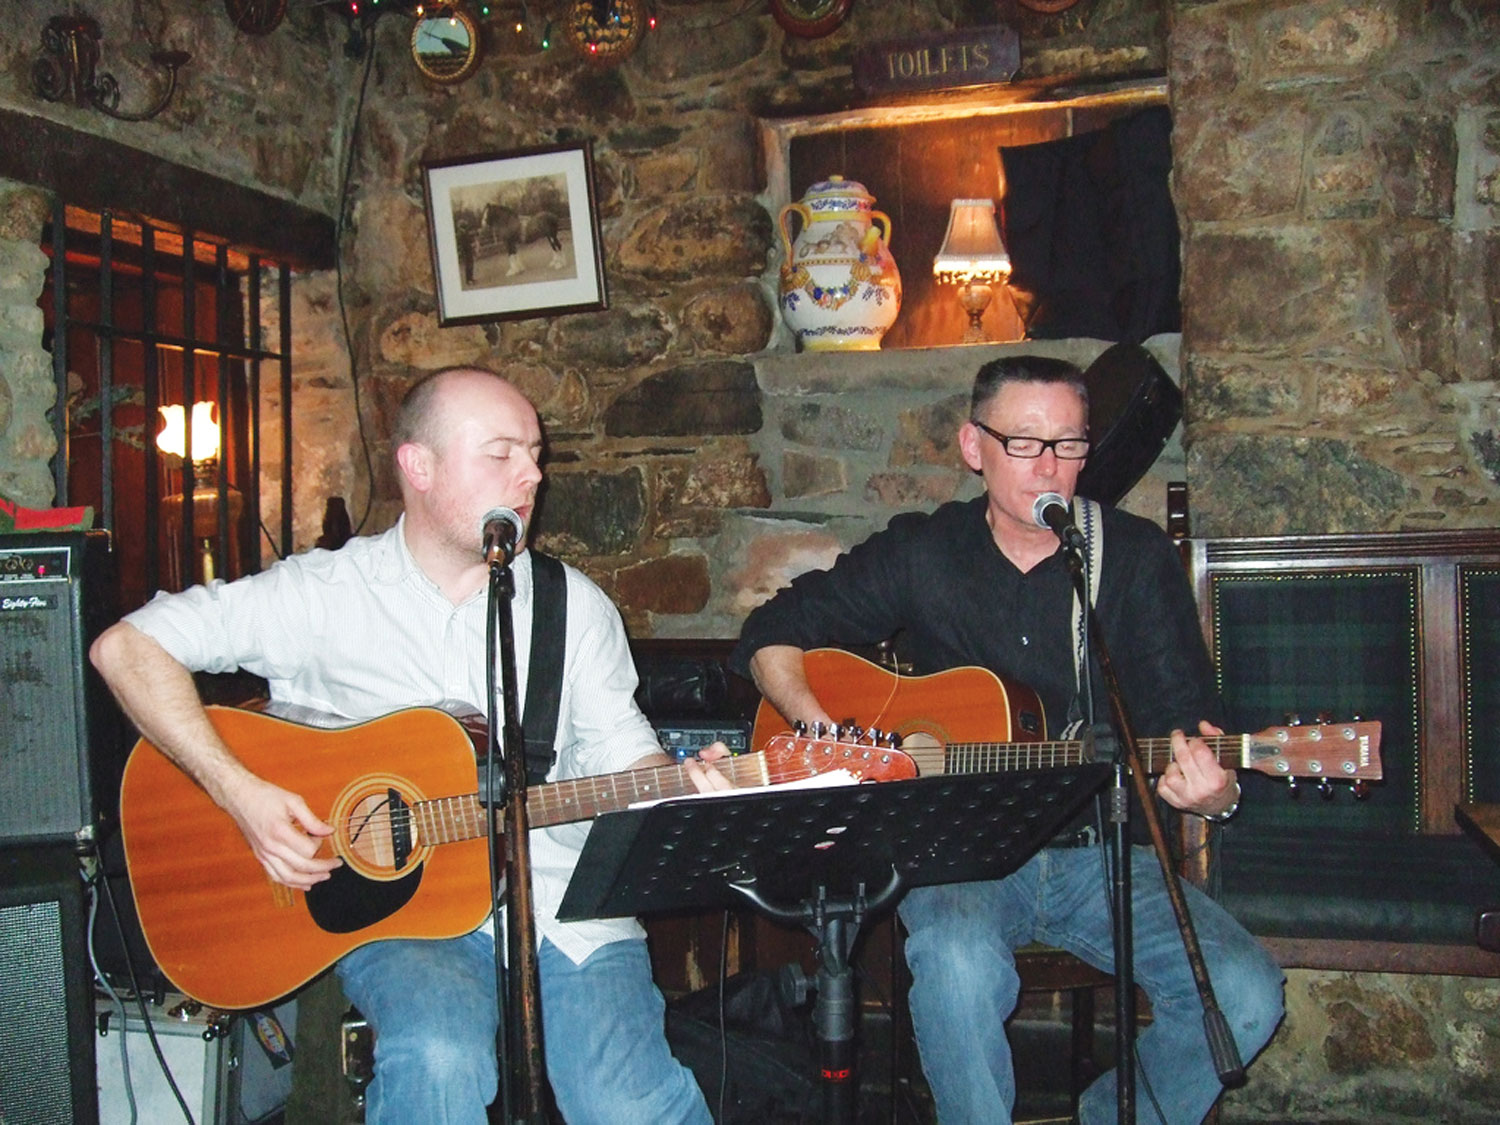 Inn folk music by Loch Lomond